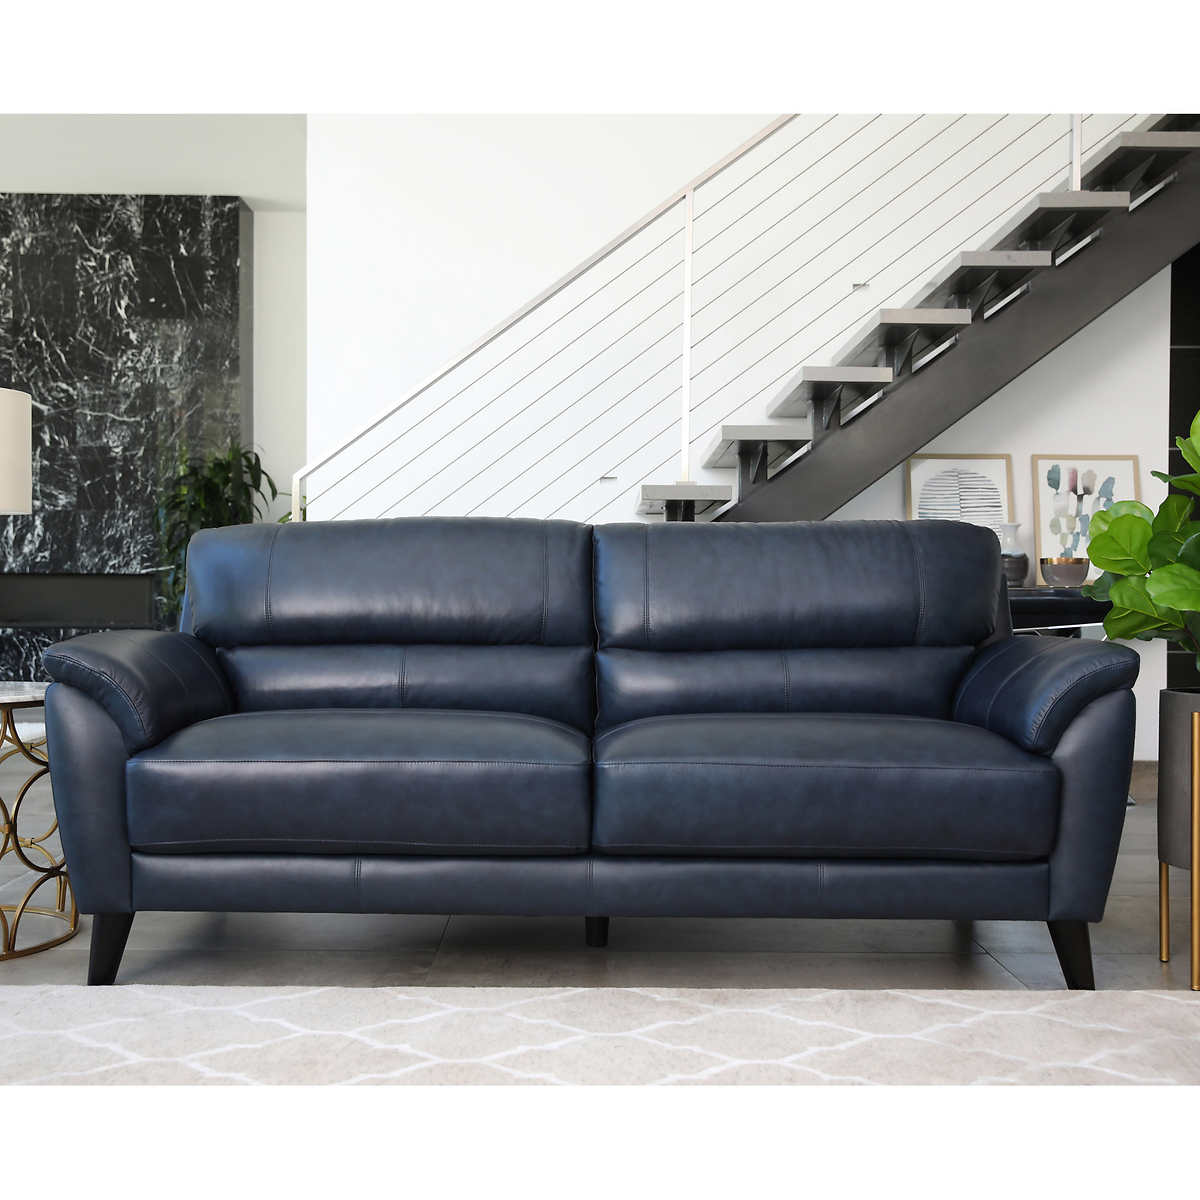 Gray leather living room furniture - Sovana Top Grain Leather Sofa